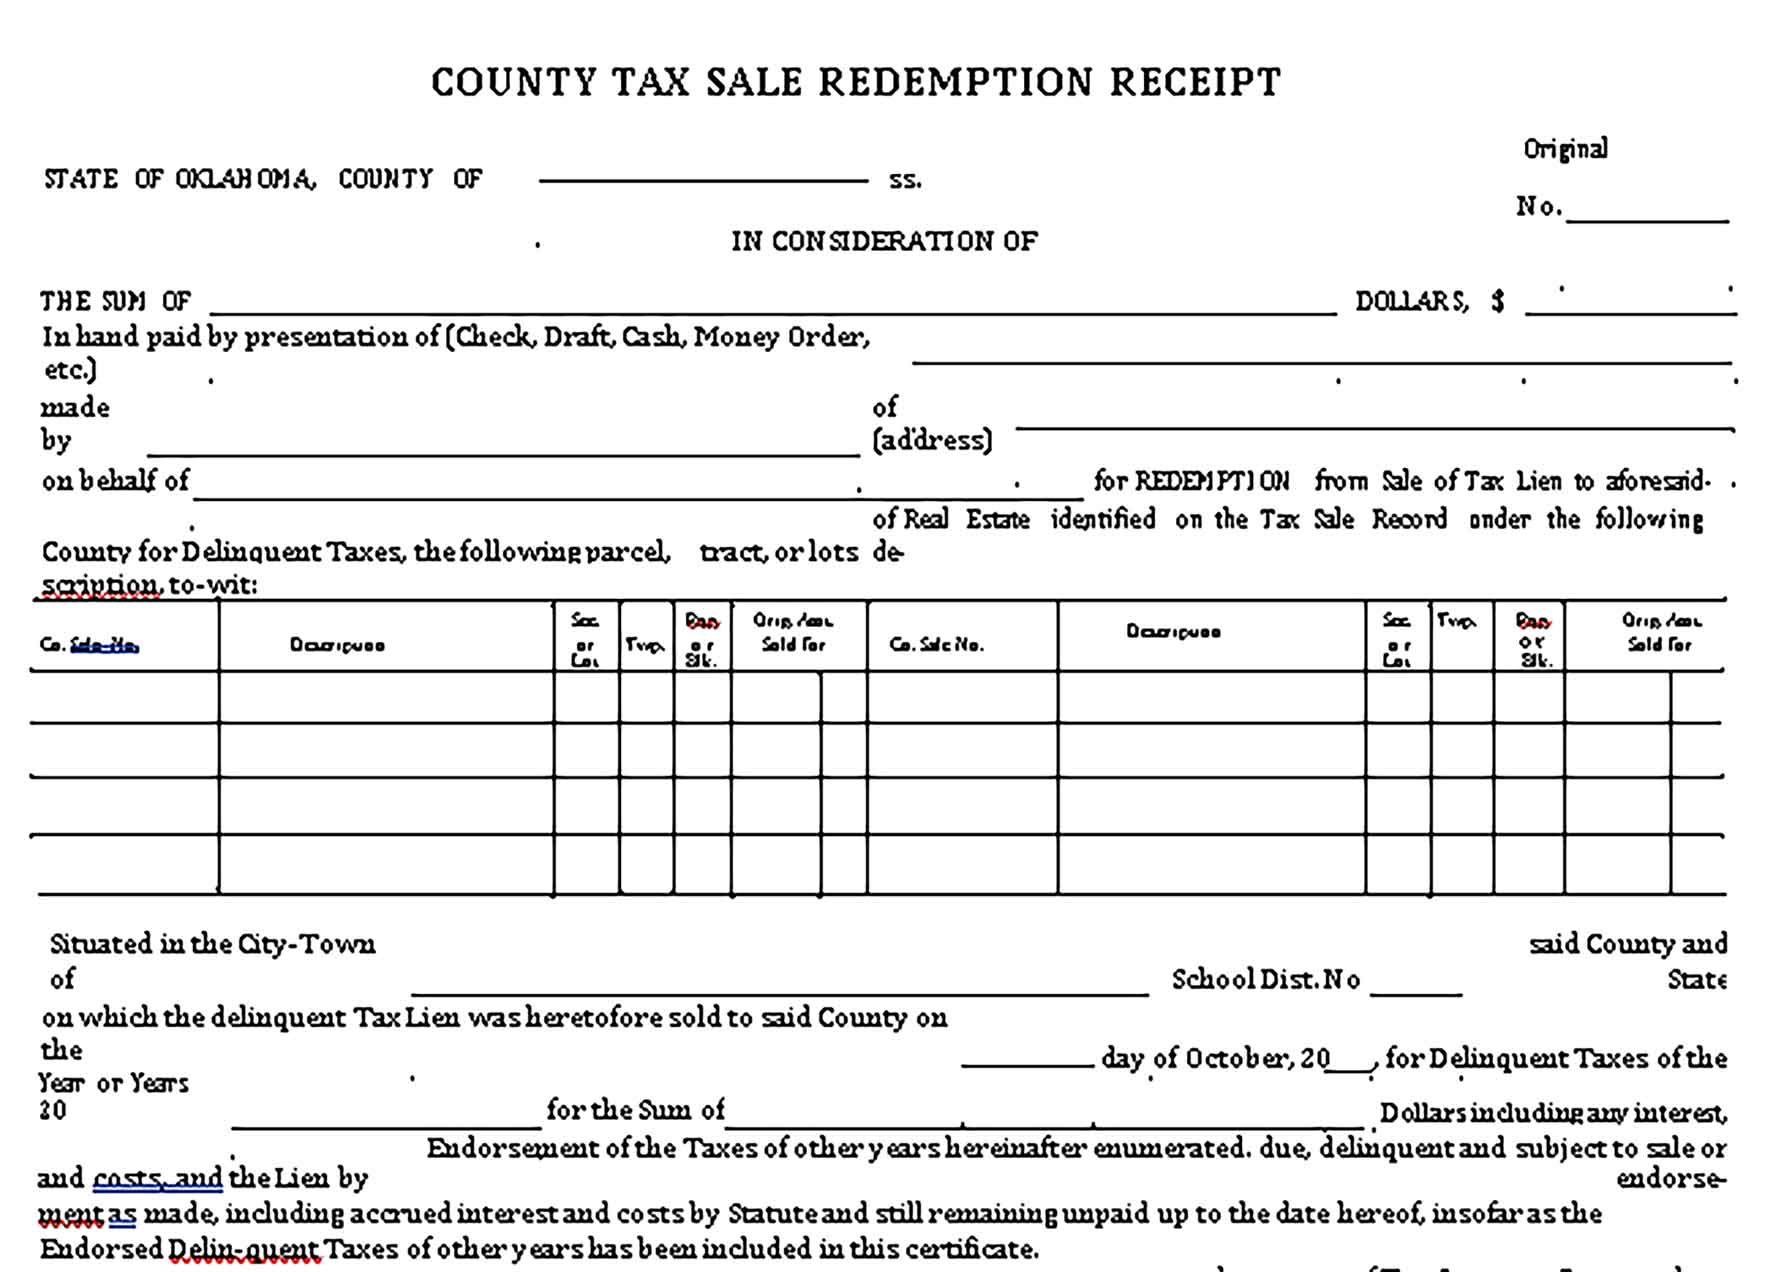 Sample Tax Sale Redemption Receipt Templates